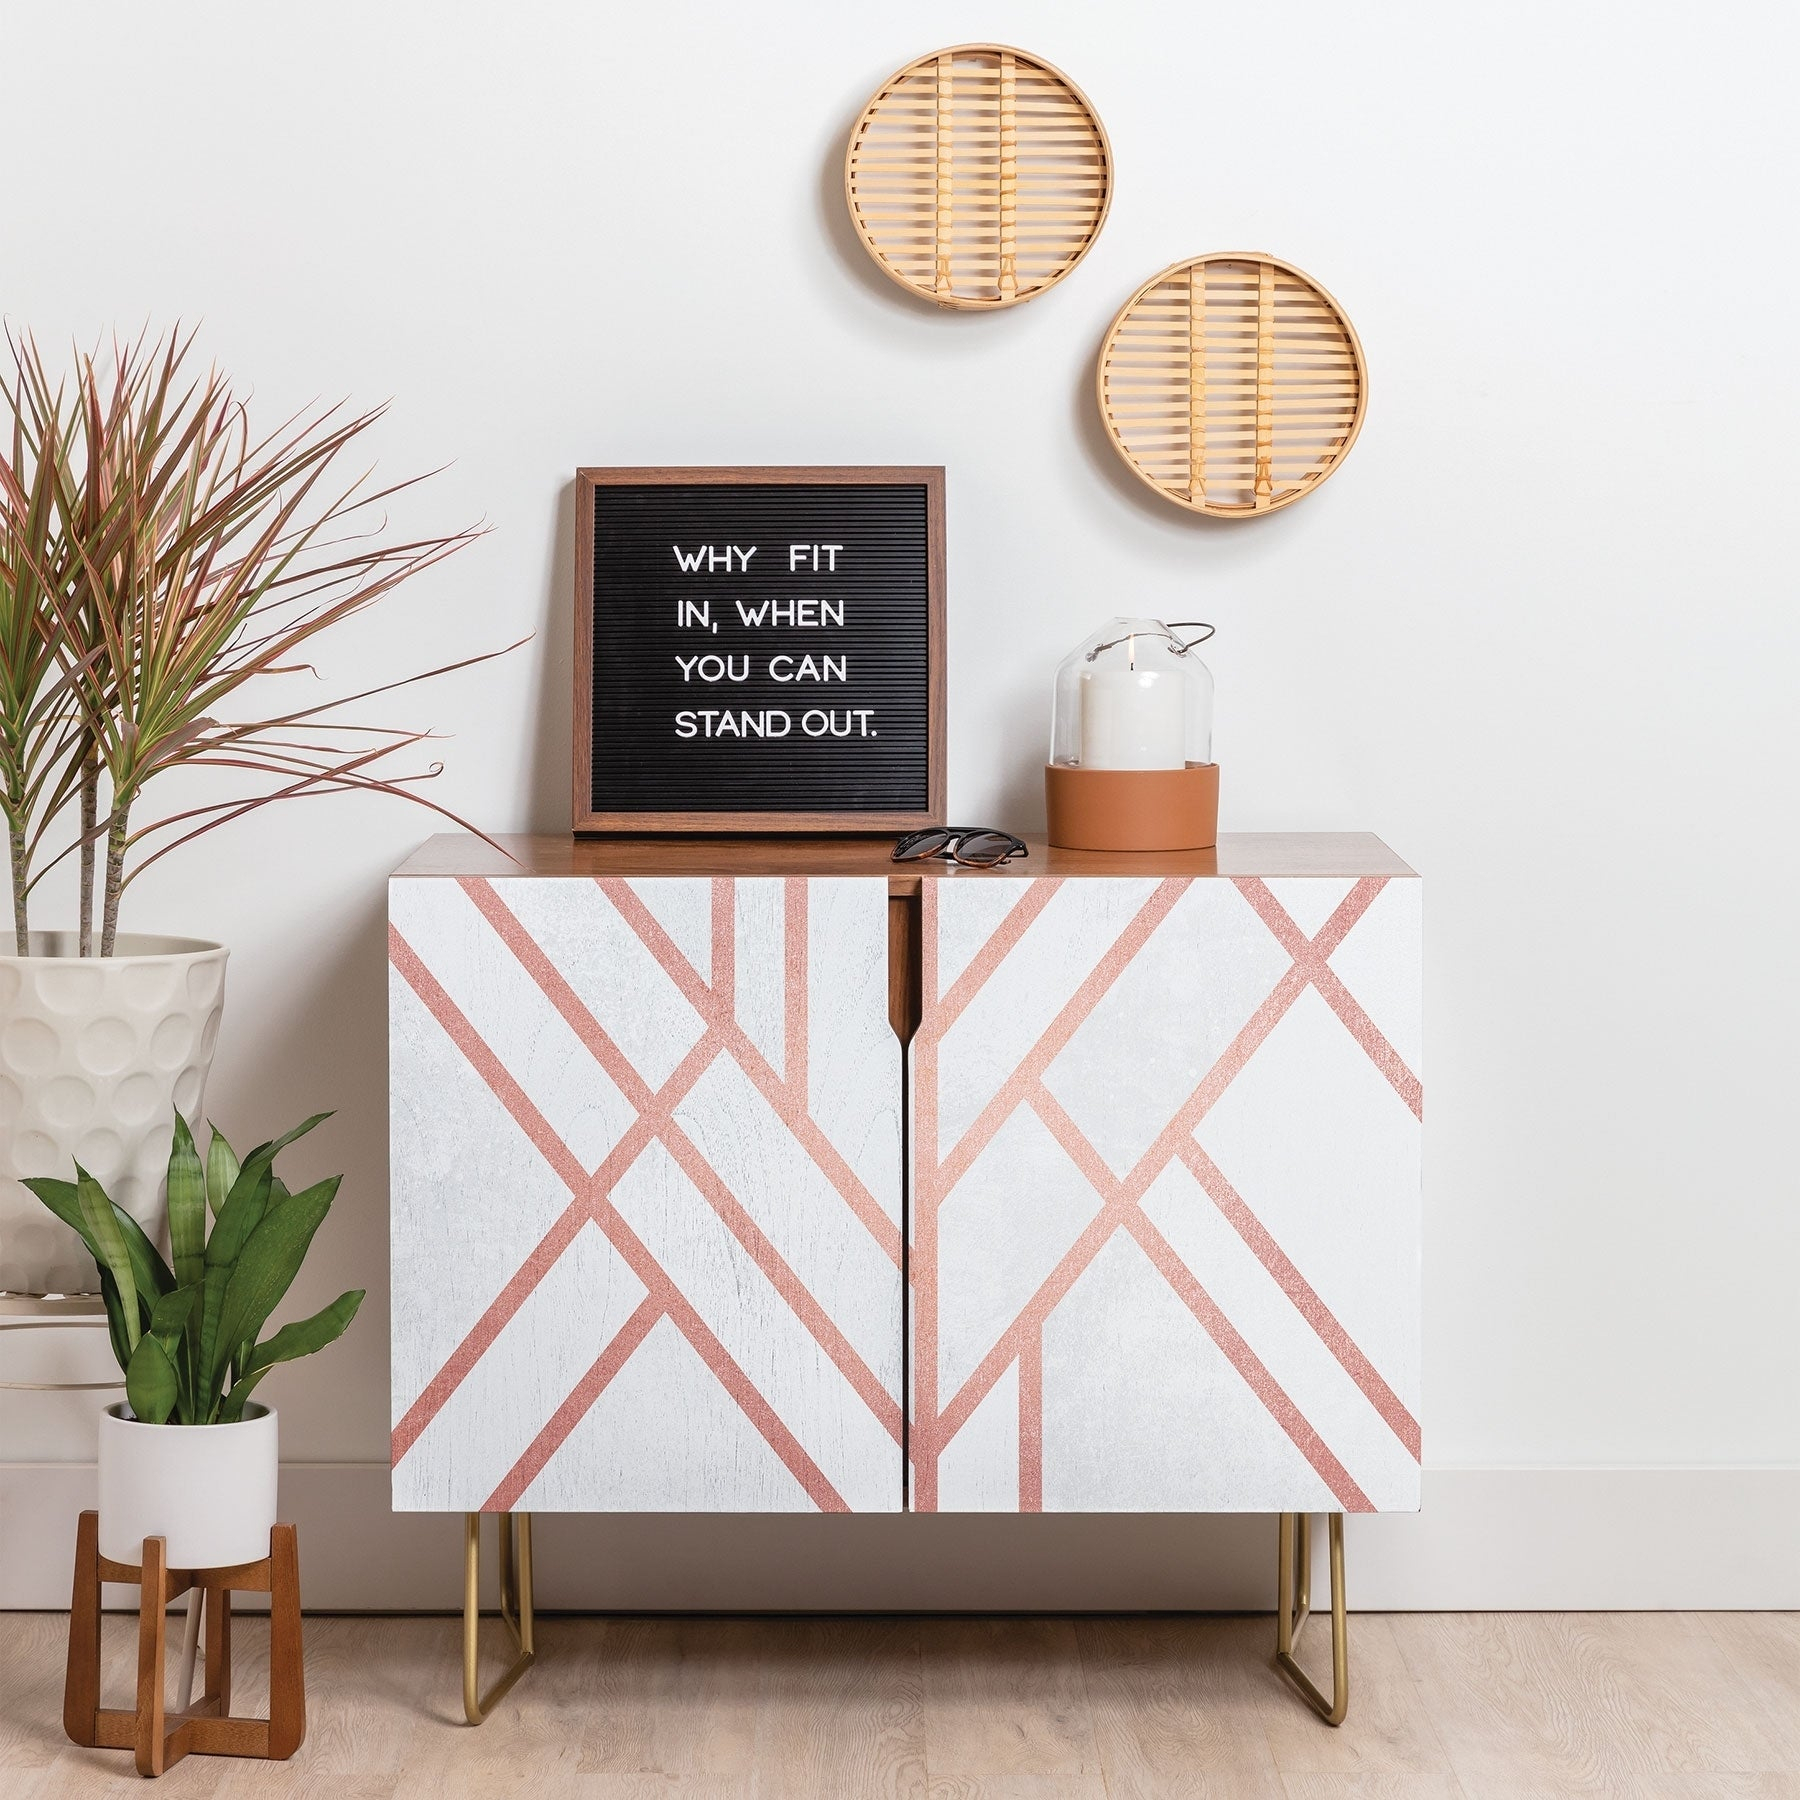 Deny Designs Pink And White Geometric Credenza (Birch Or Walnut, 3 Leg Options) Regarding Line Geo Credenzas (View 11 of 30)